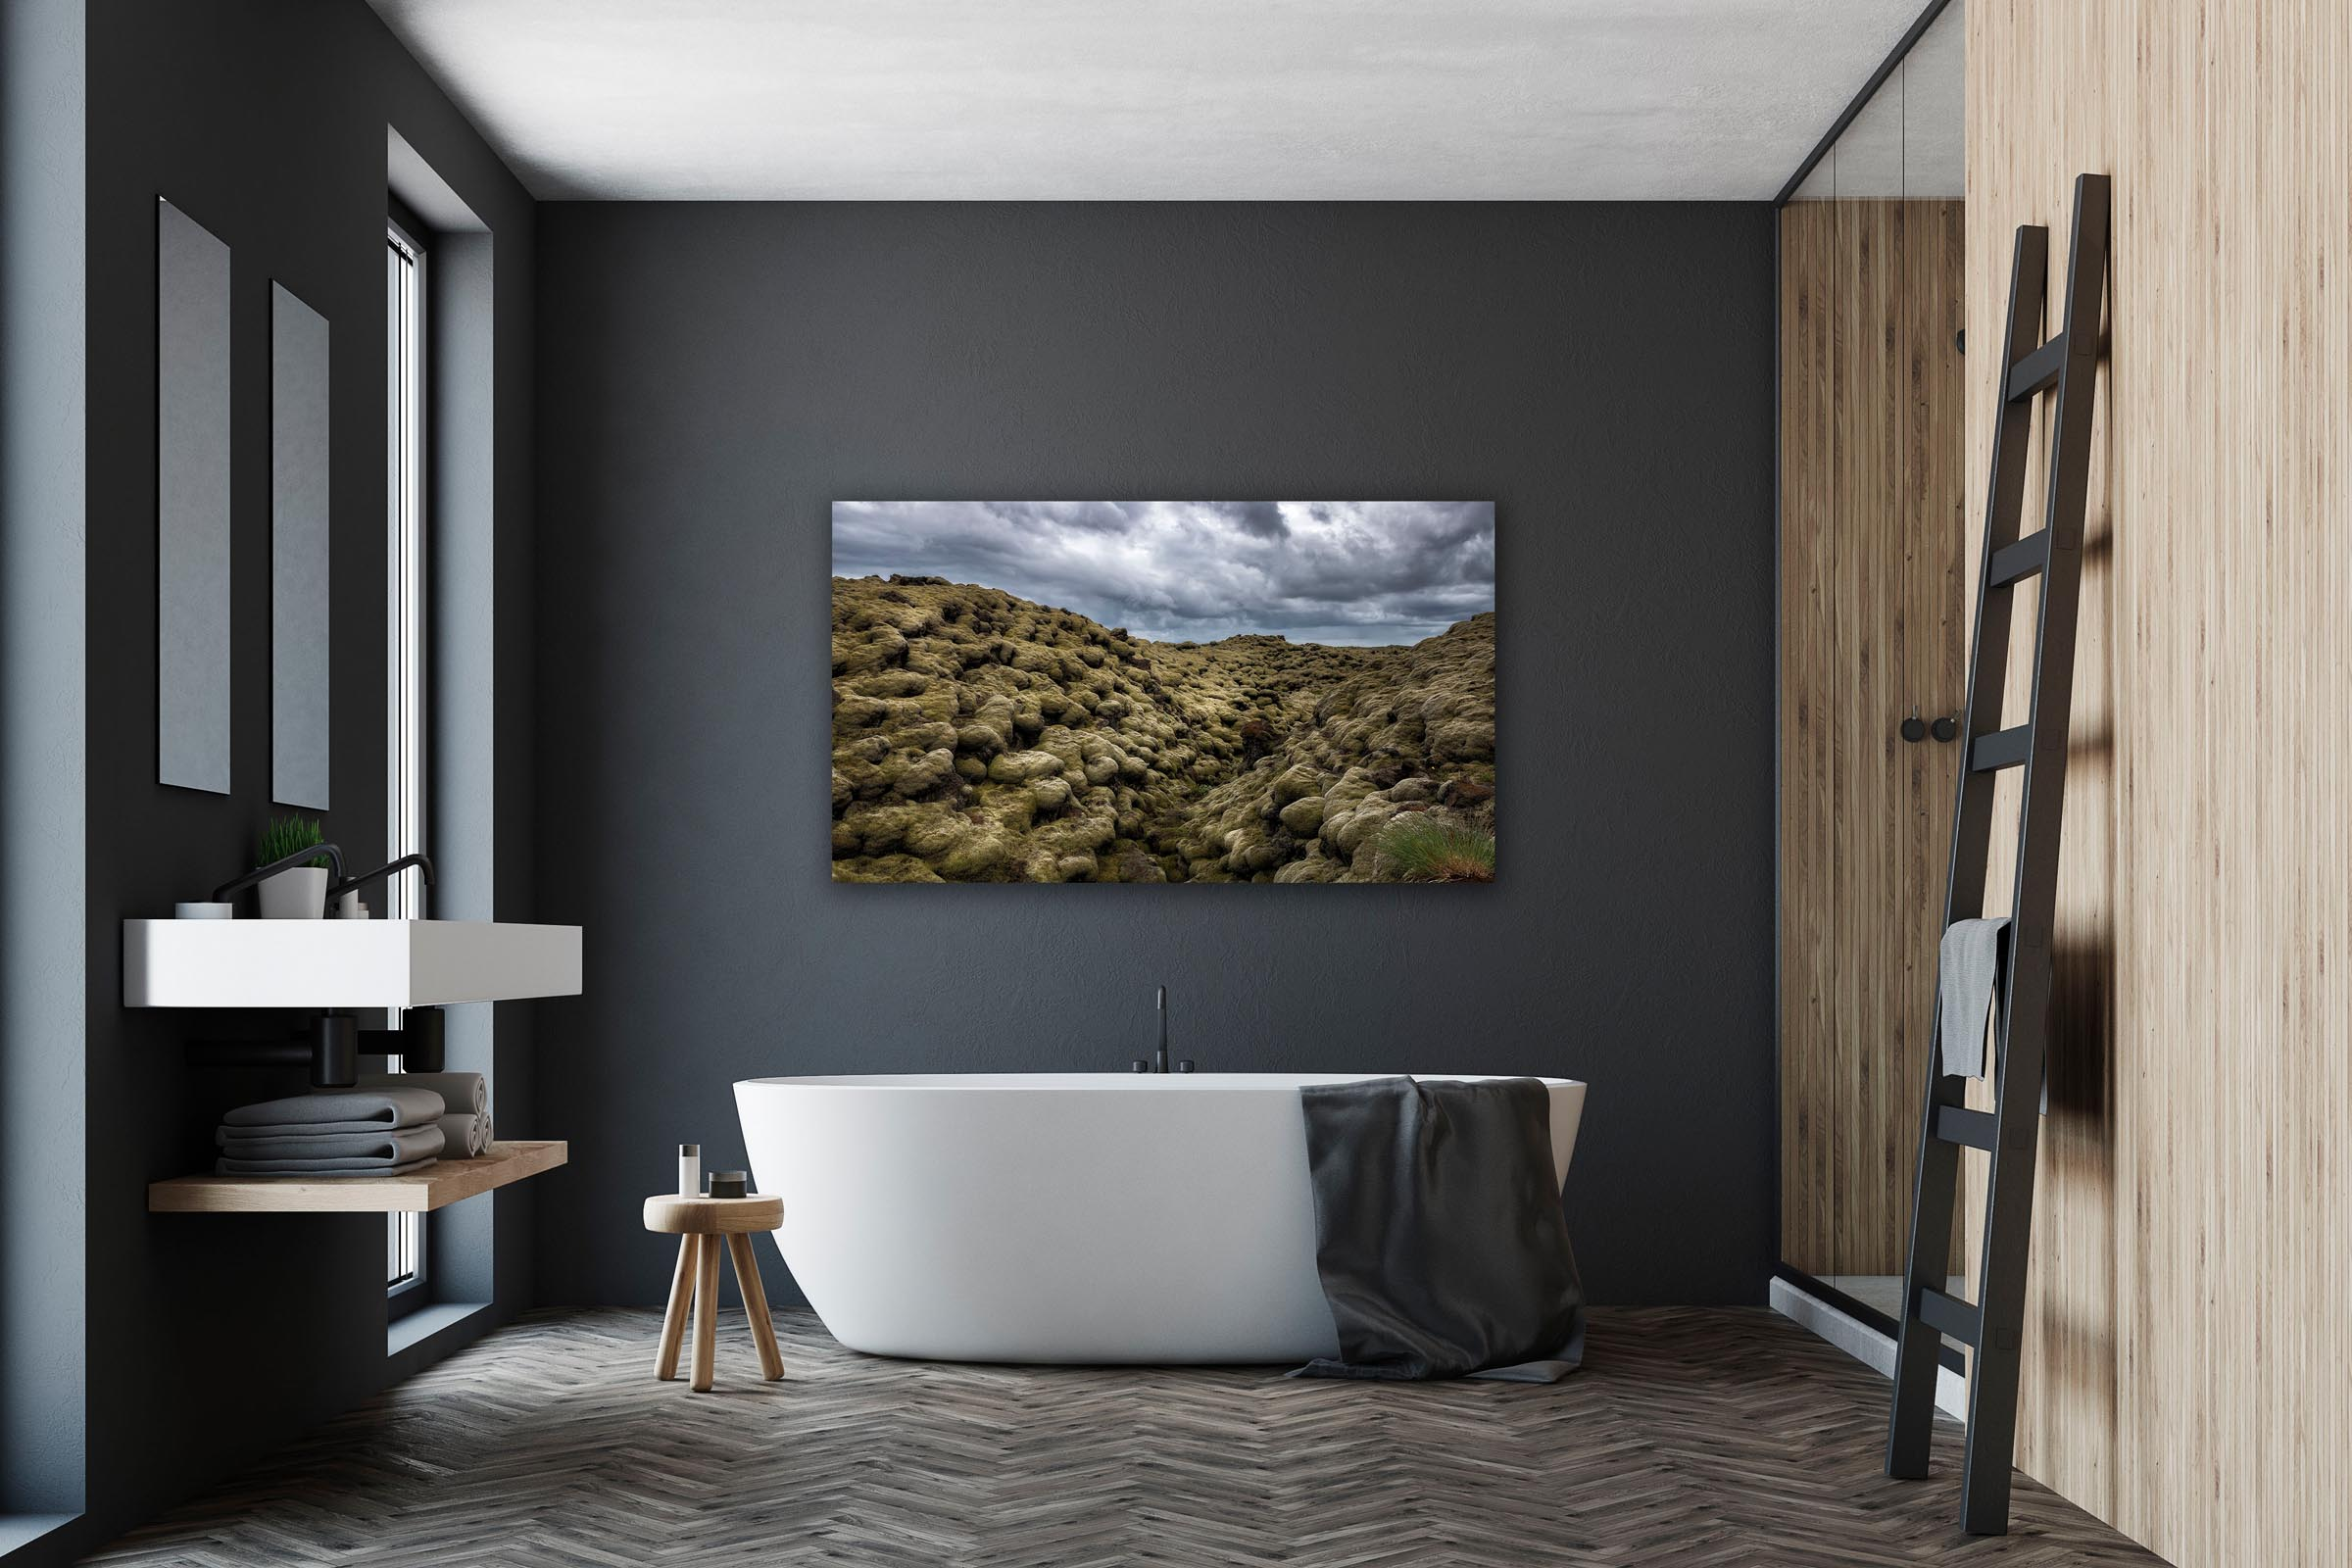 Wall art of Lava Field in Eldhraun, Iceland by Brent Goldman Photography